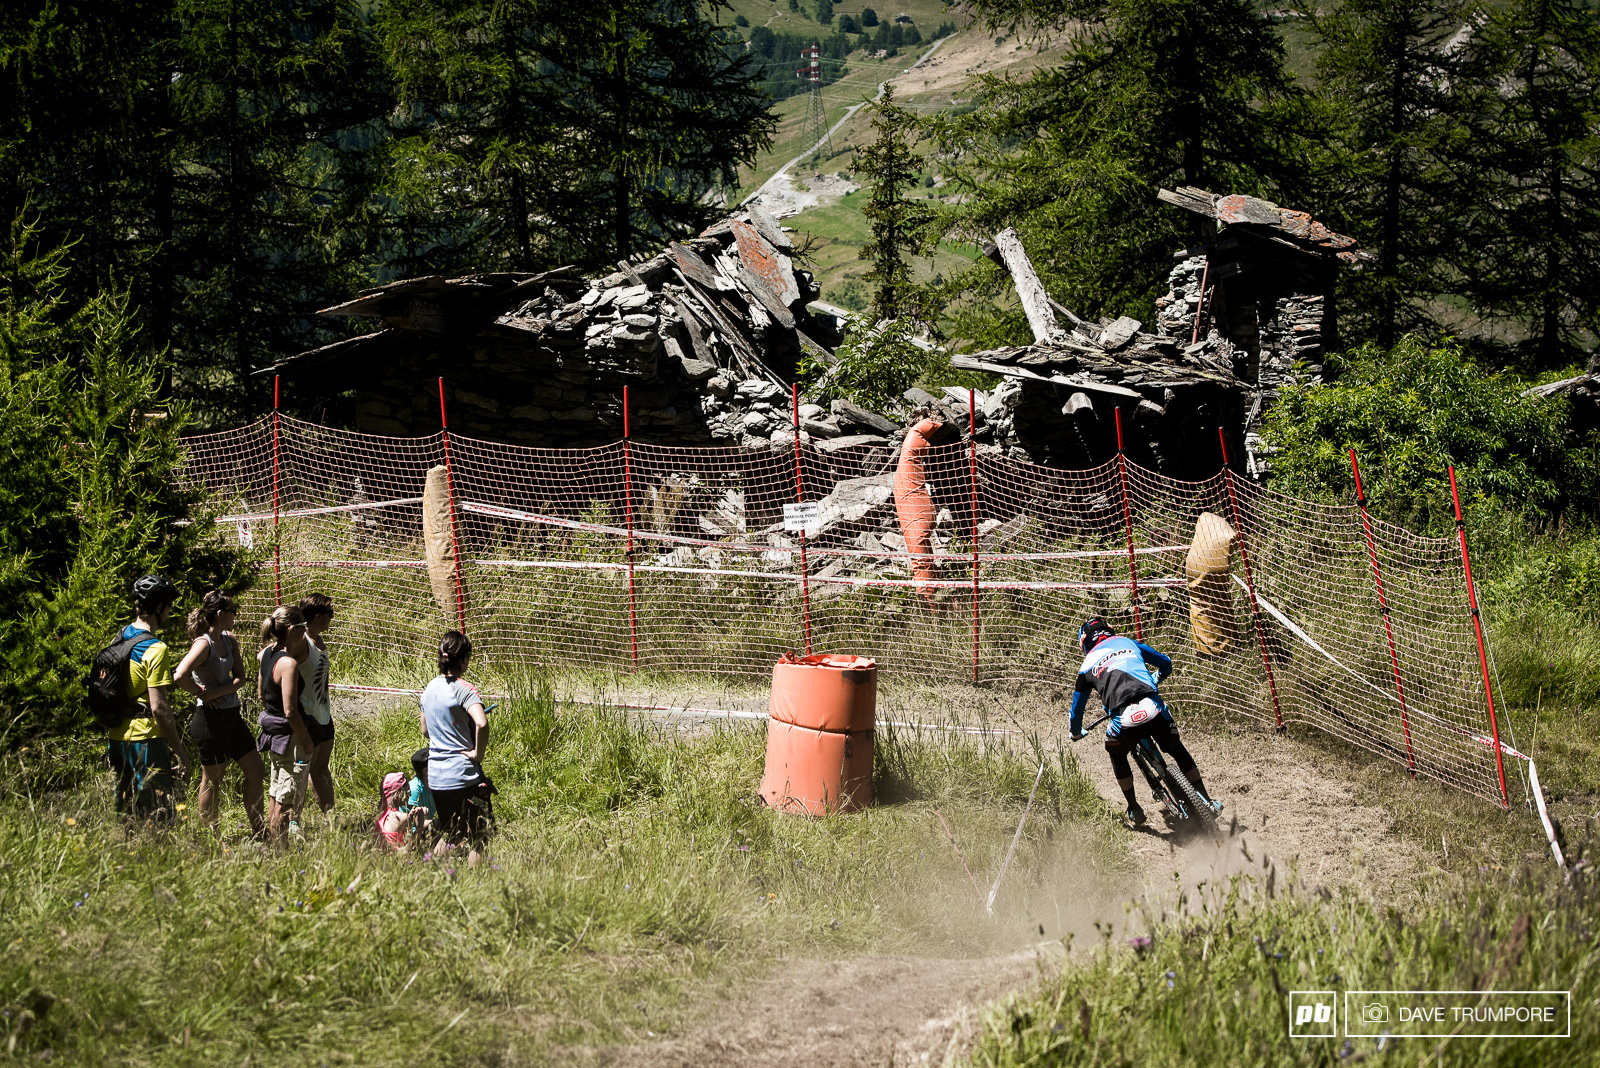 Some of the sections looked more like a DH track than an EWS with riders riding at full gas foot out and flat out.